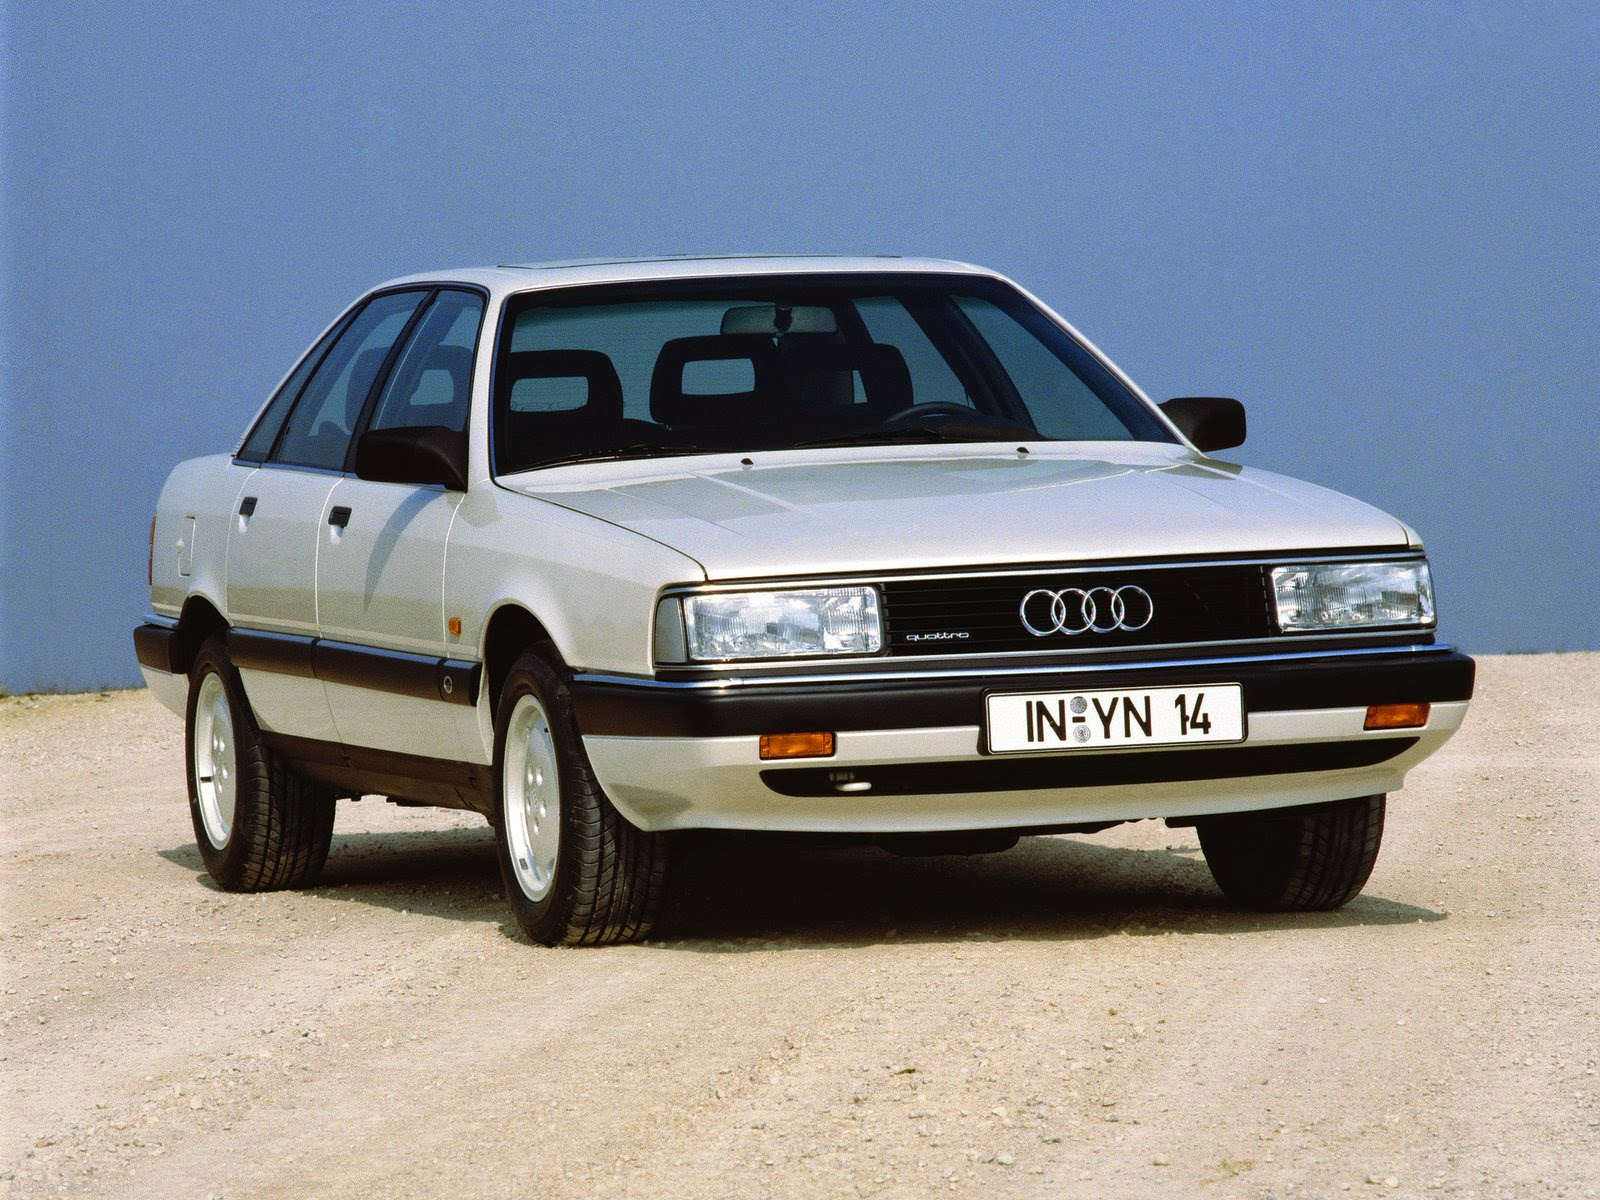 1989 Audi 200 front view